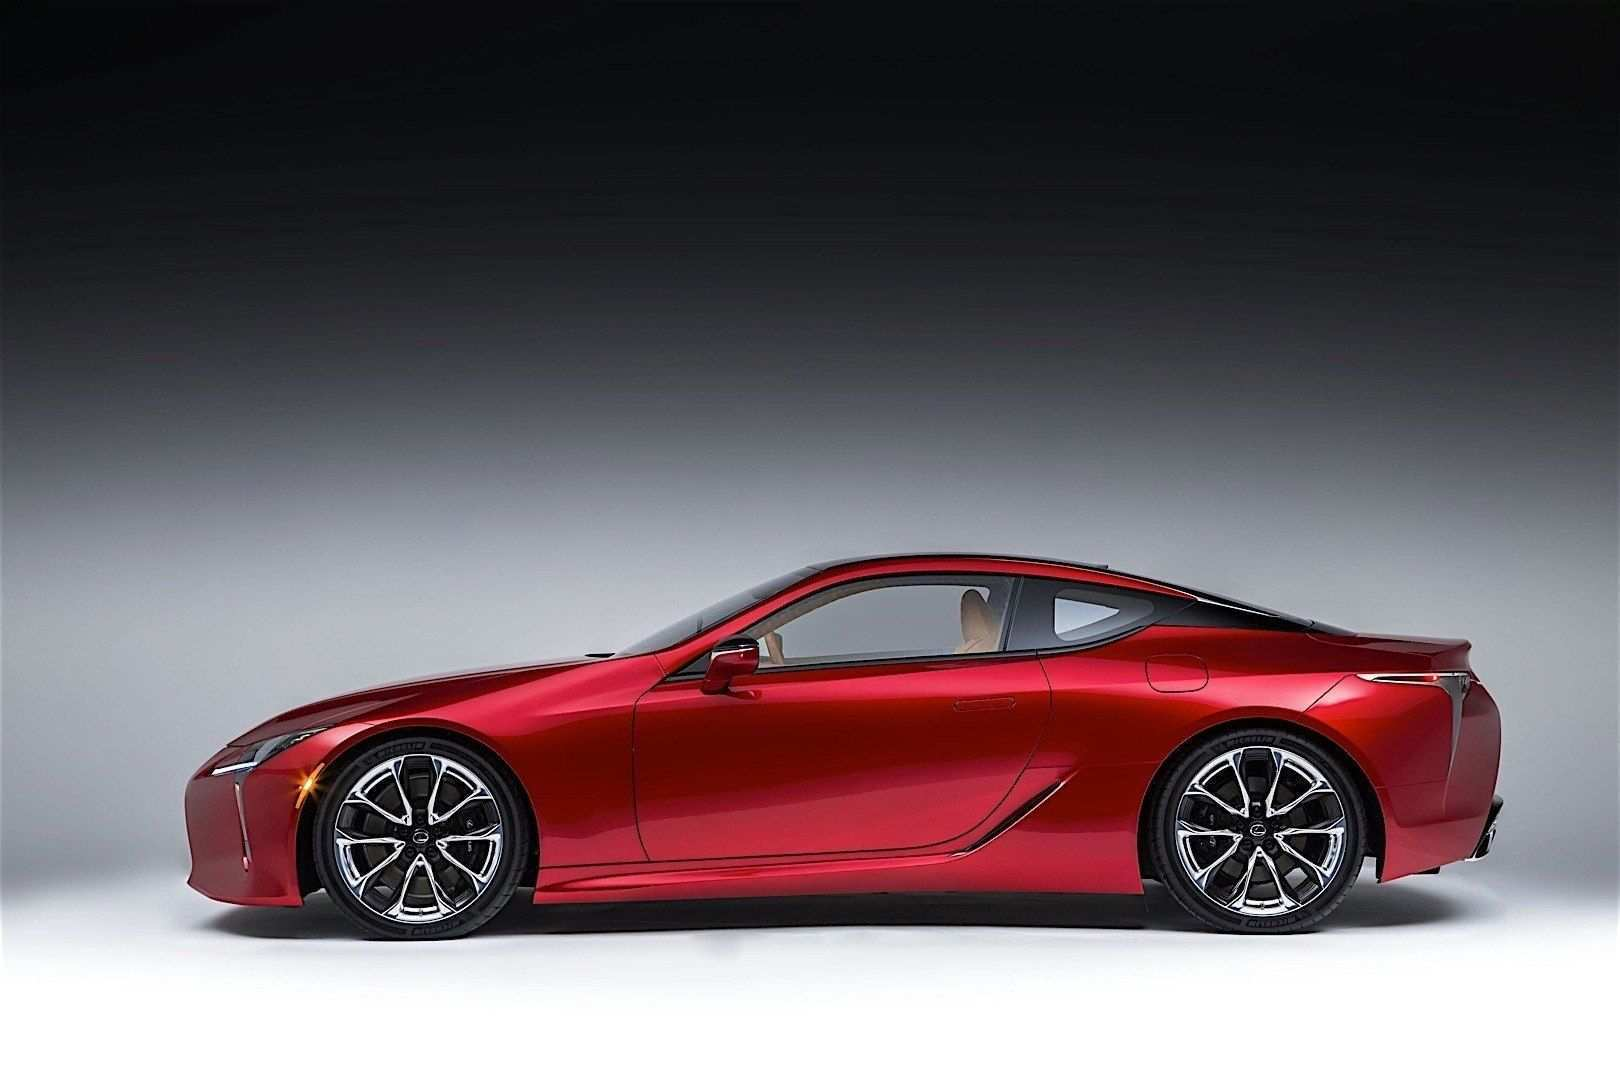 42 All New 2020 Lexus Lf Lc Spesification